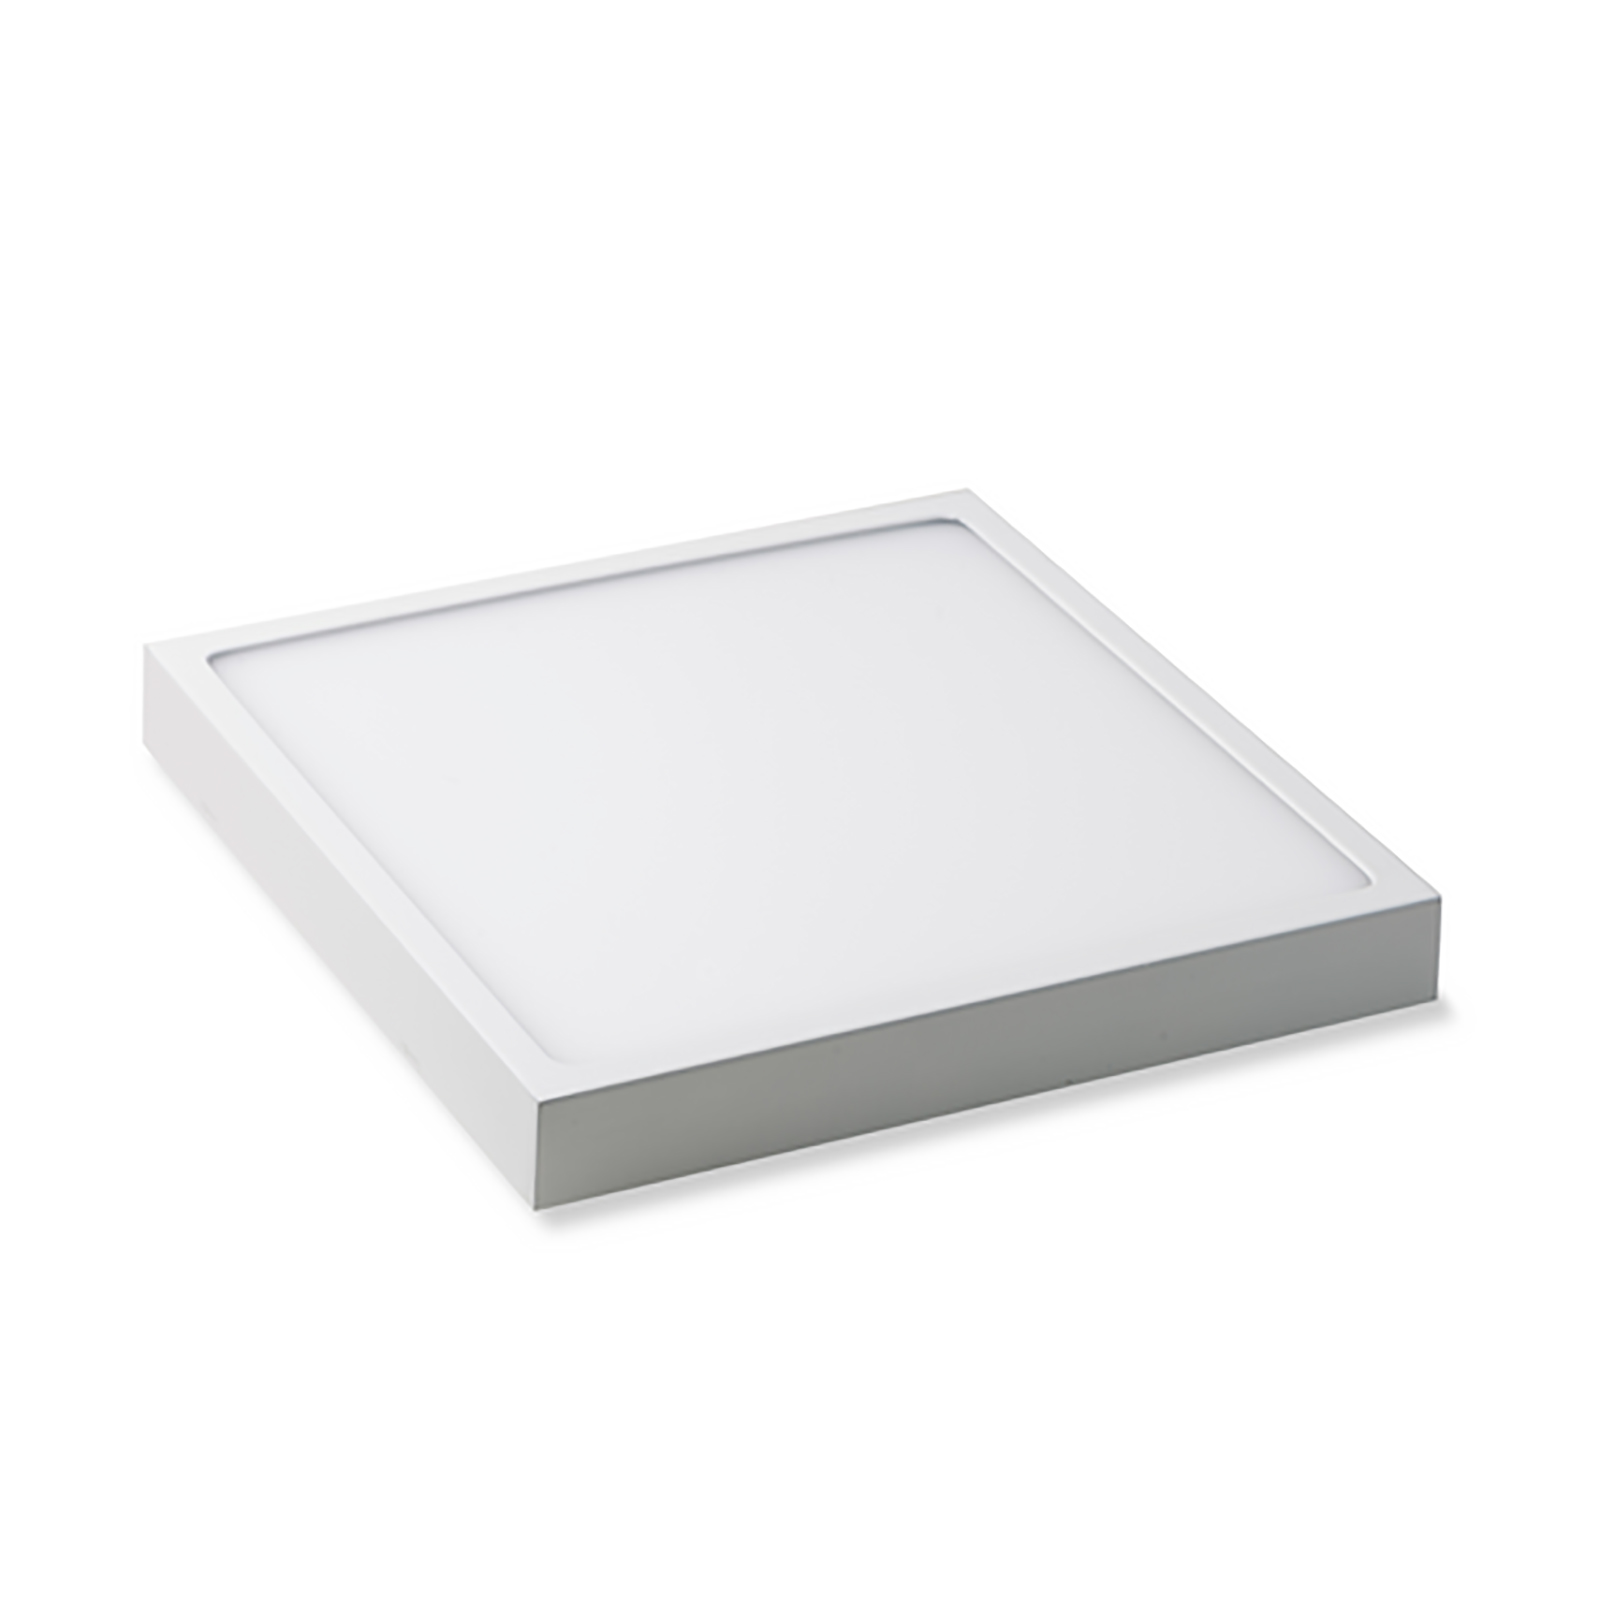 Crossled: plafoniera led 18w quadrata pannello superficie parete ...